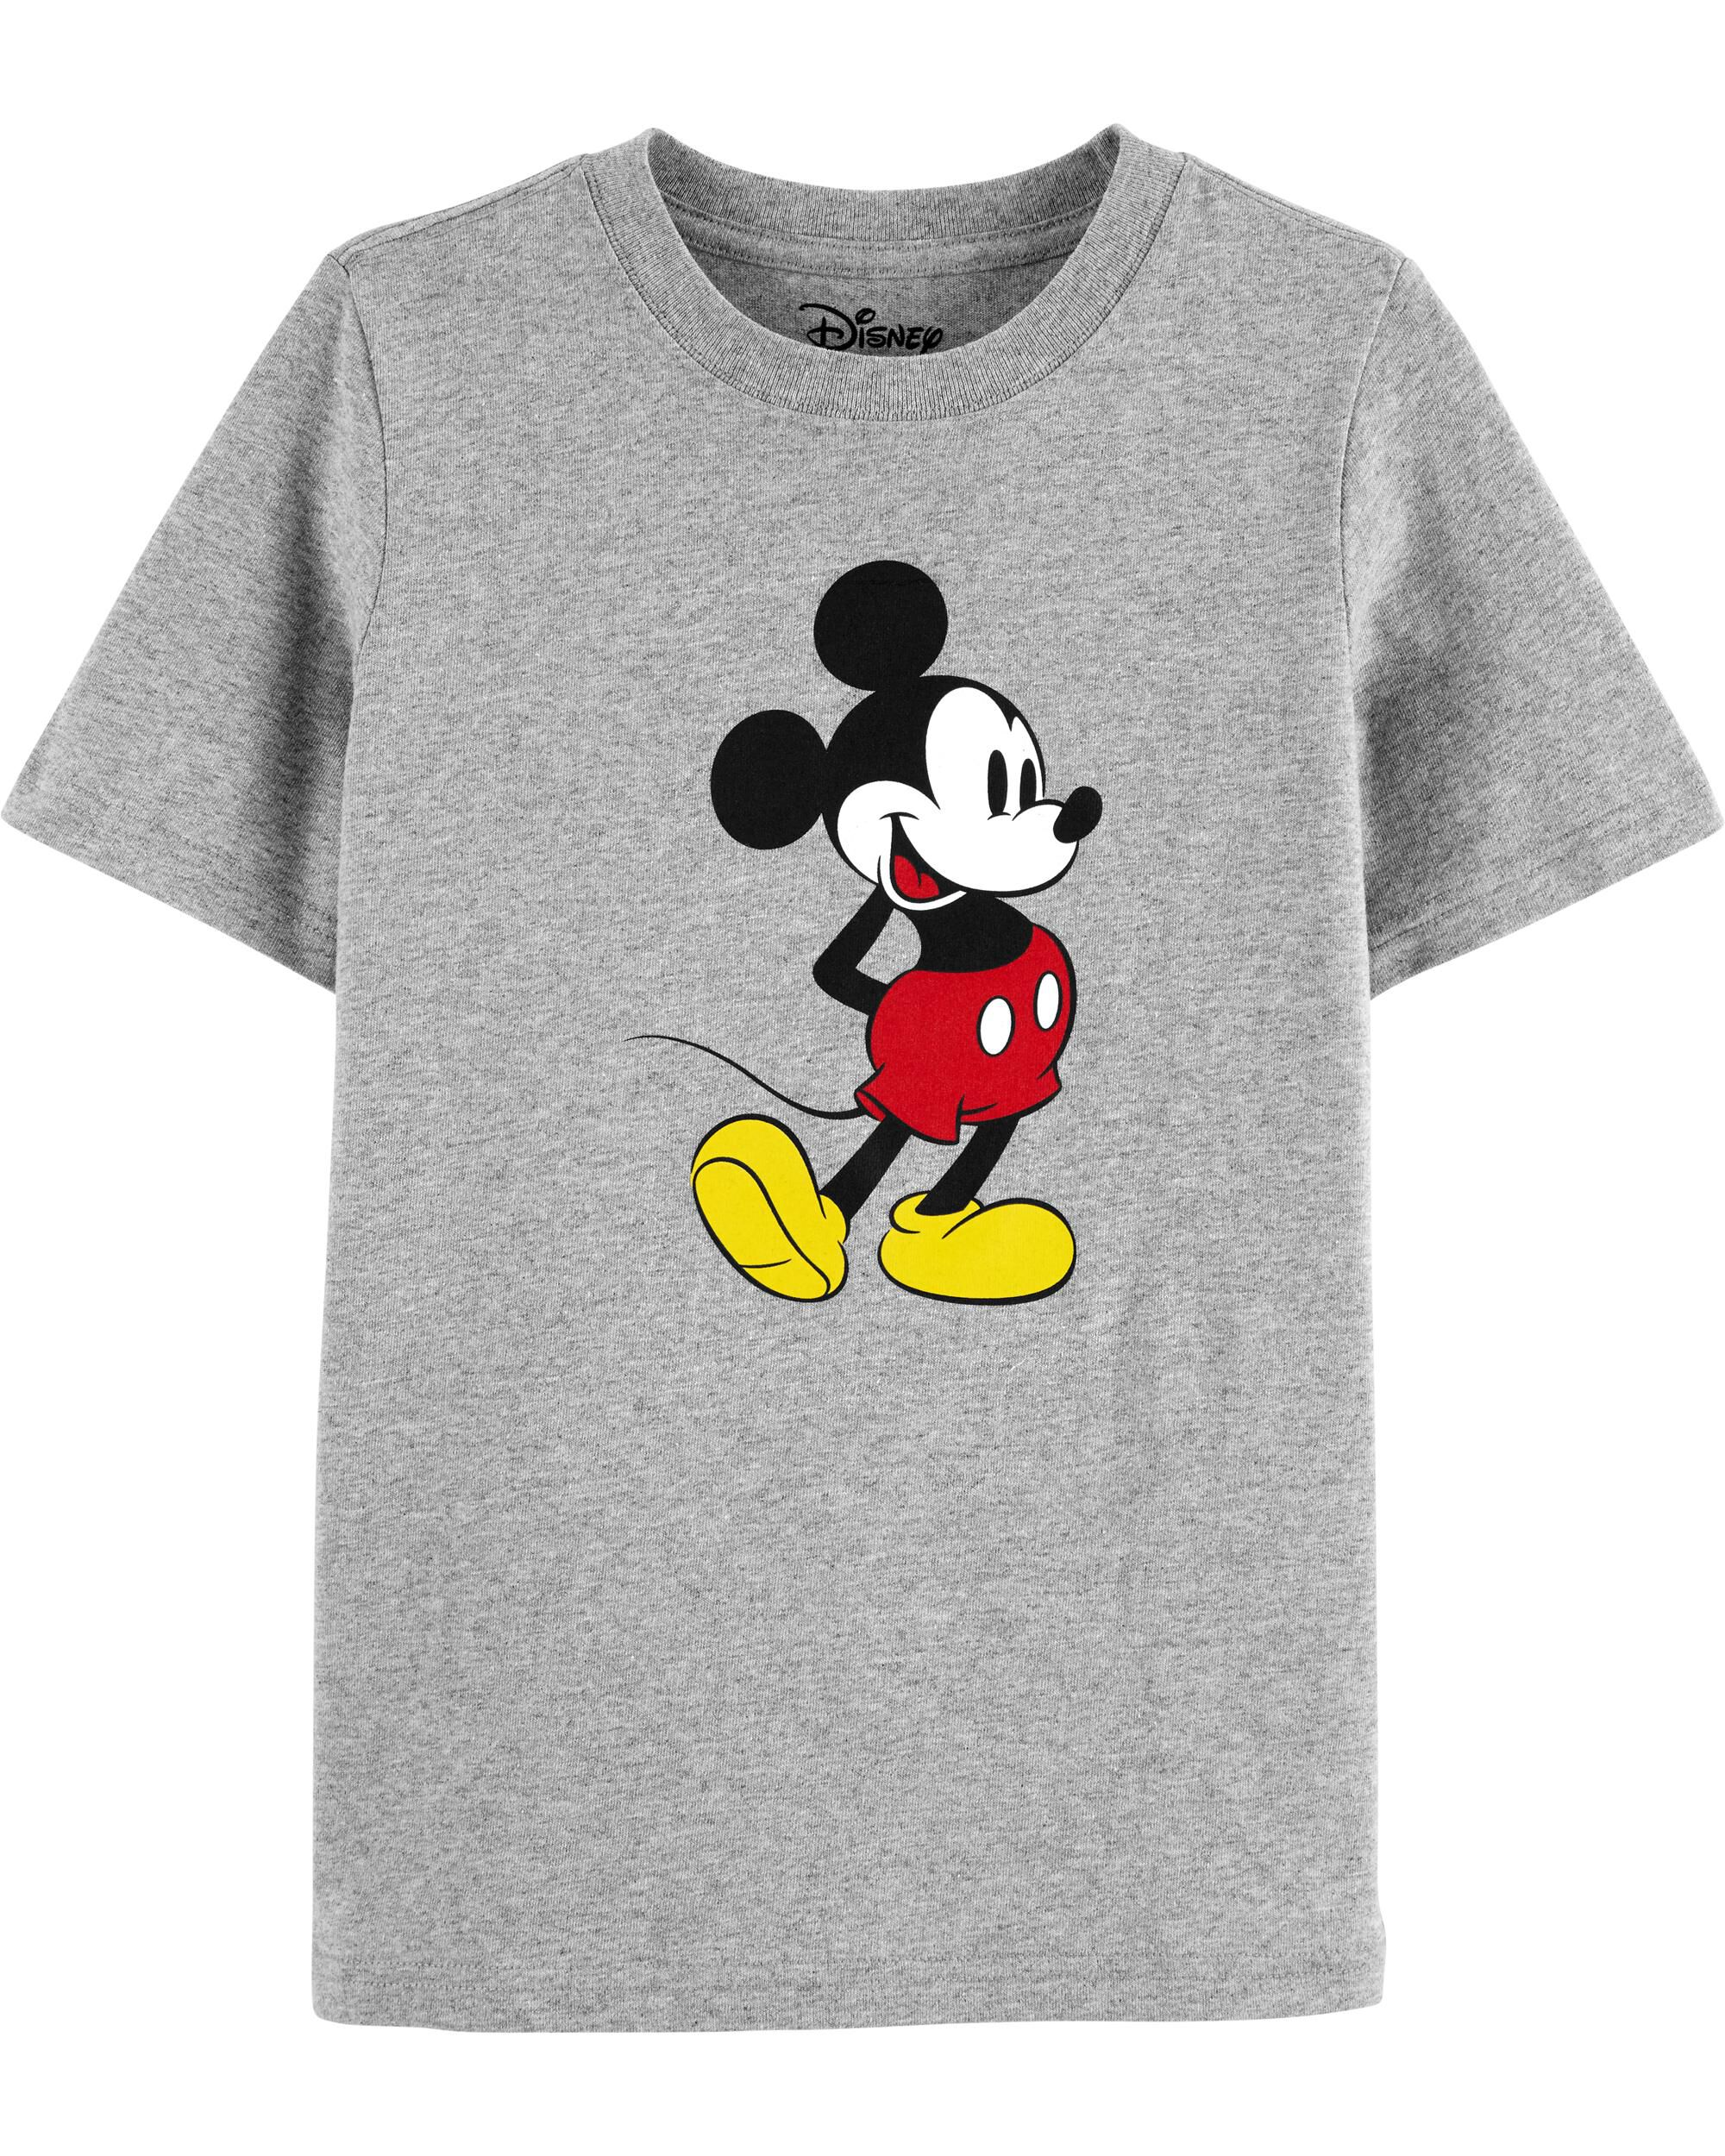 92e29f98cc6 Images. Mickey Mouse Tee